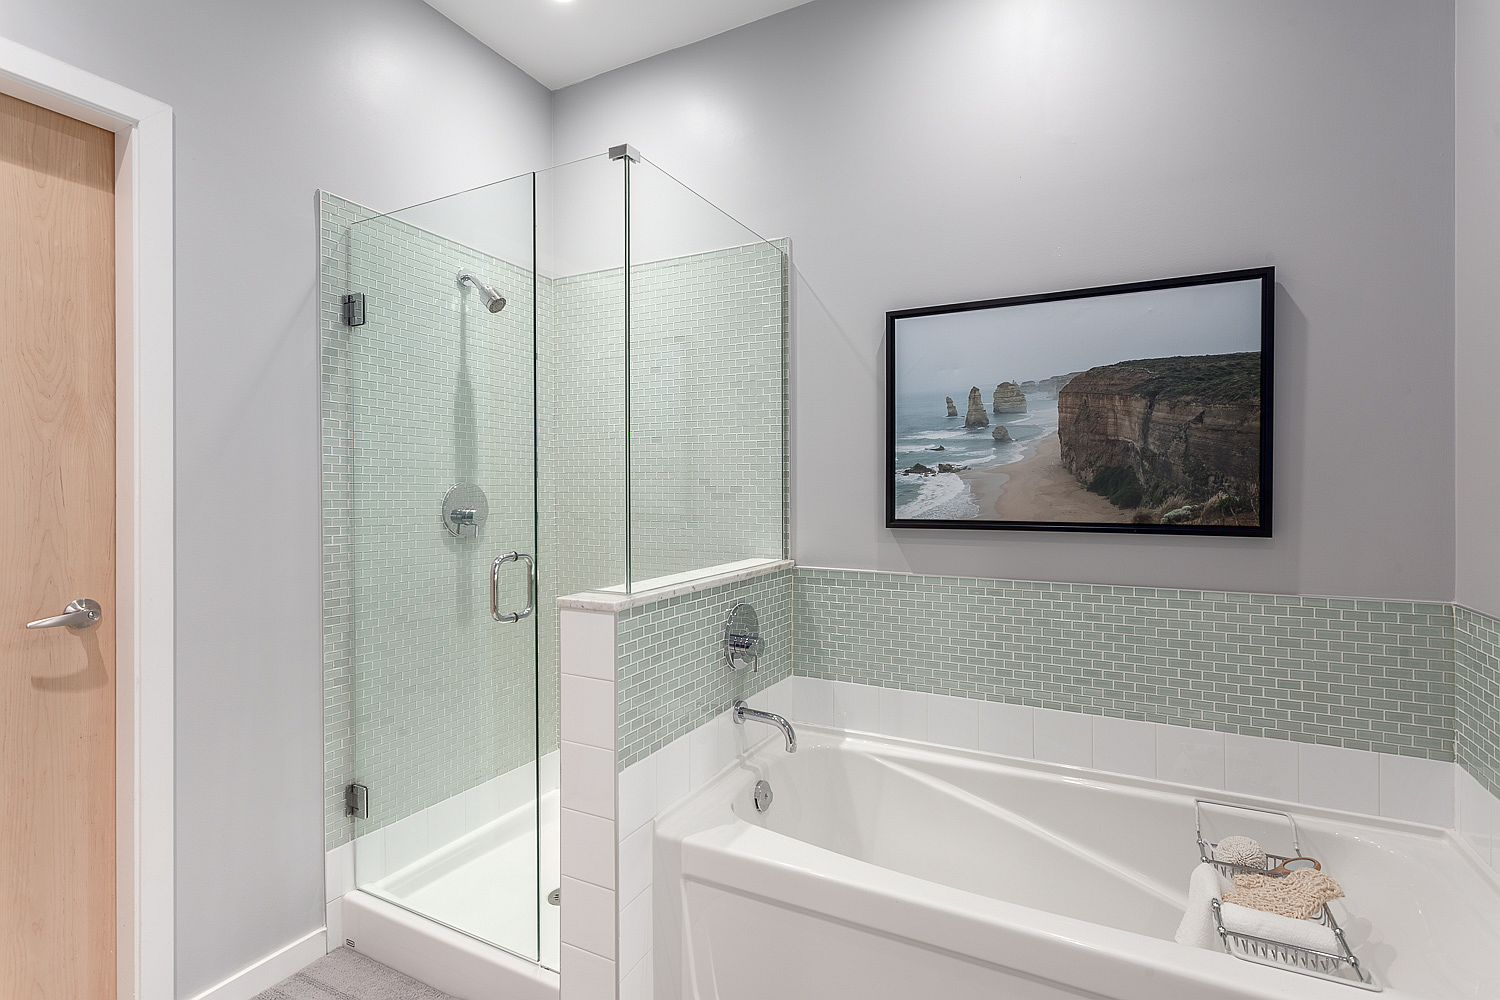 Contemporary bathroom with bathtub and glass shower in the corner